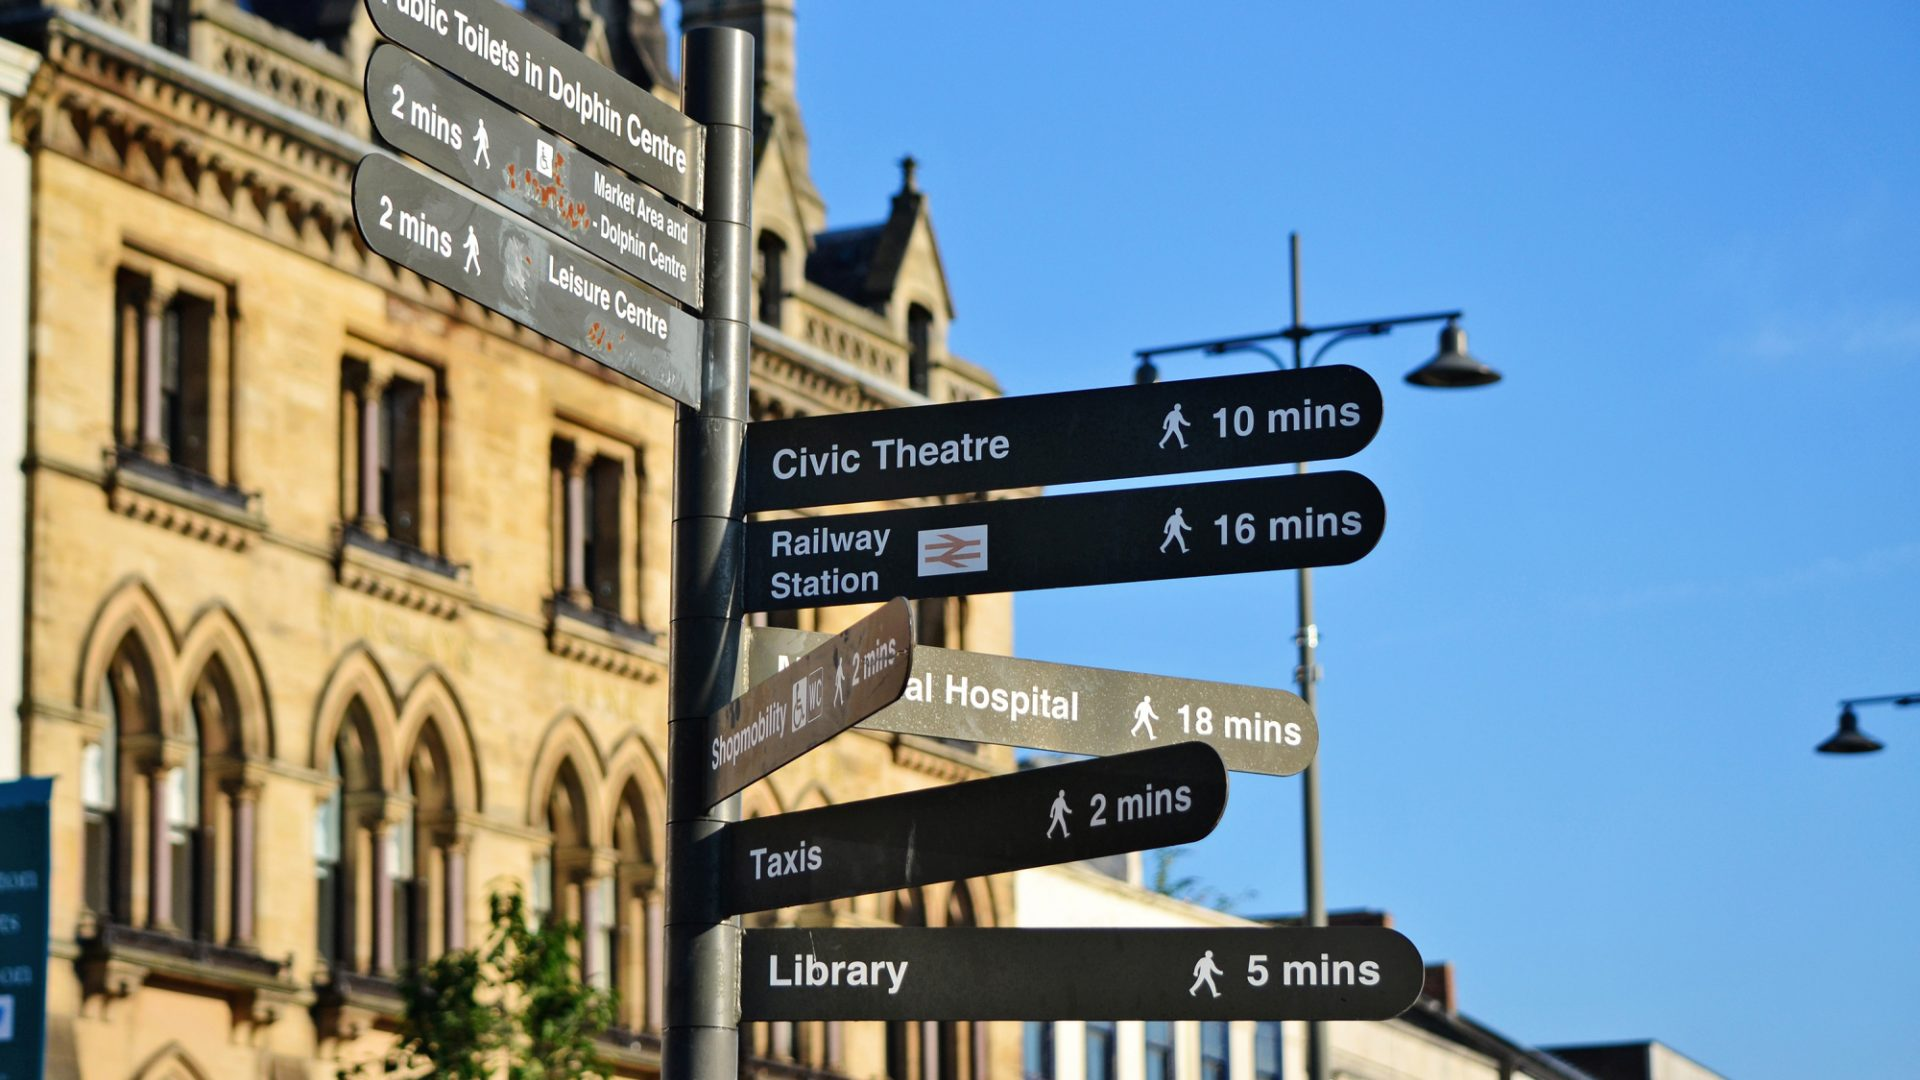 A photo of a wayfinding sign in Darlington pointing to the train station and taxi queue